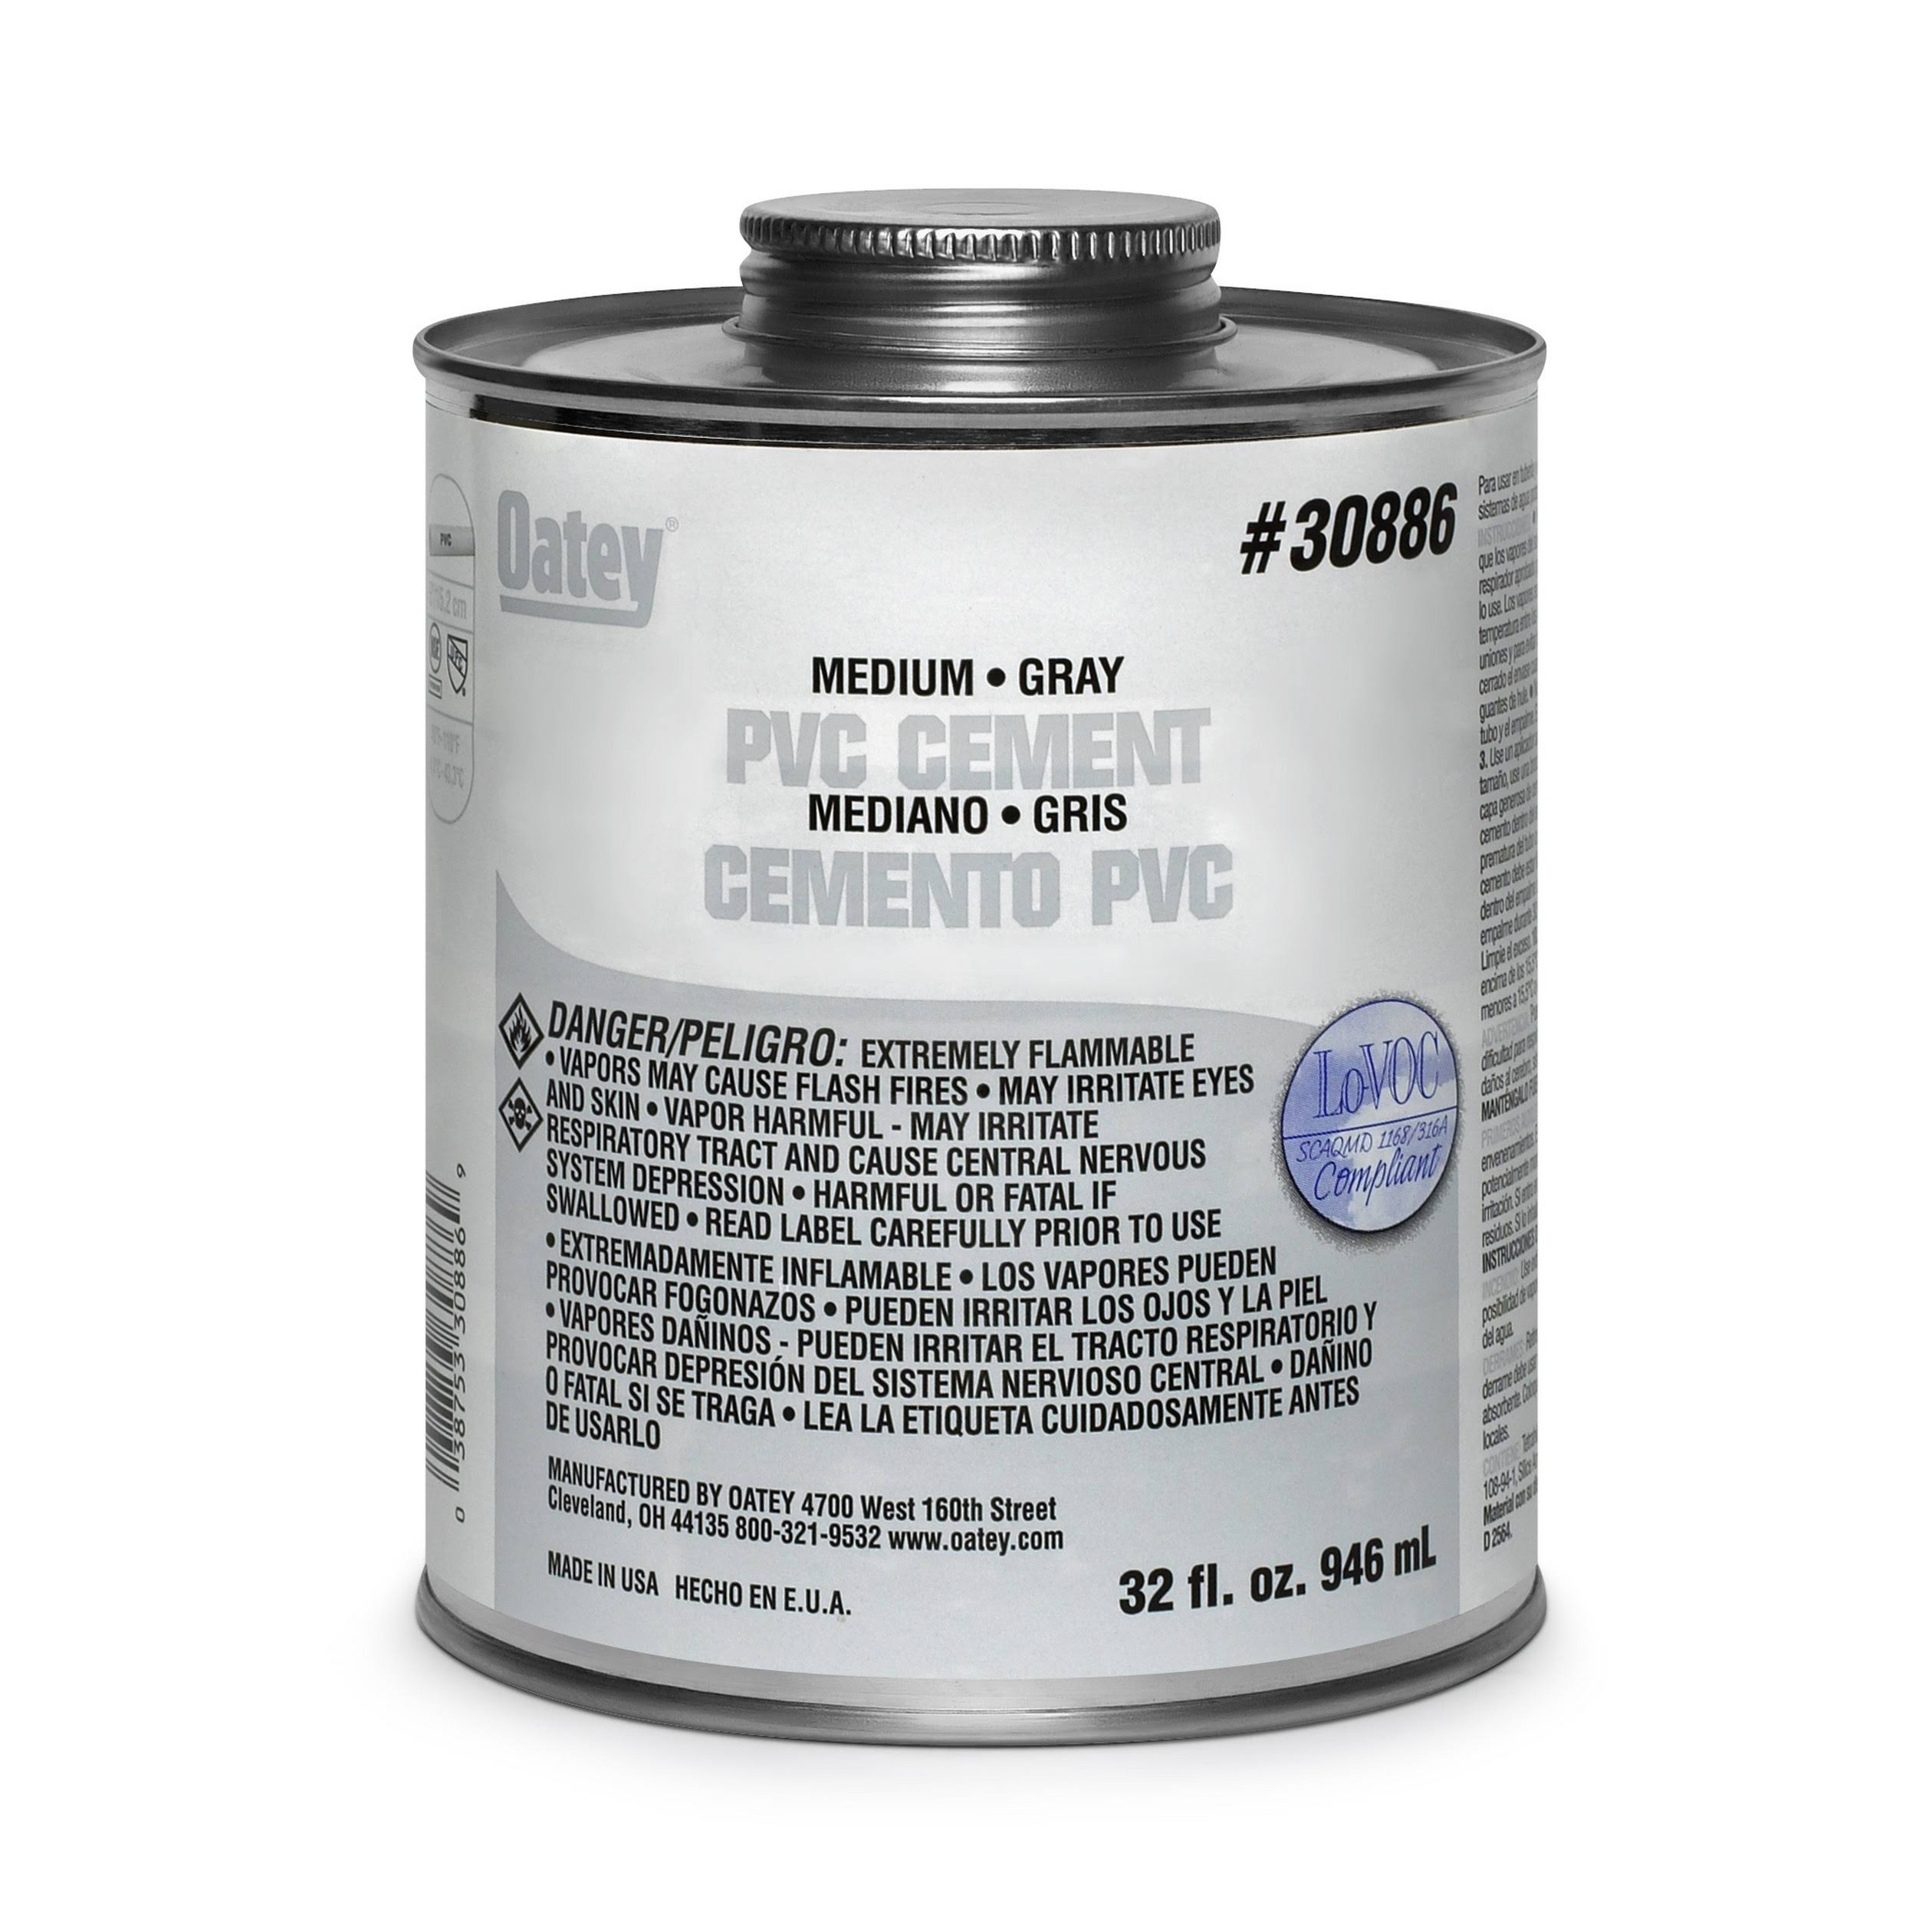 Oatey Fusion Single Step PVC Cement - 10oz